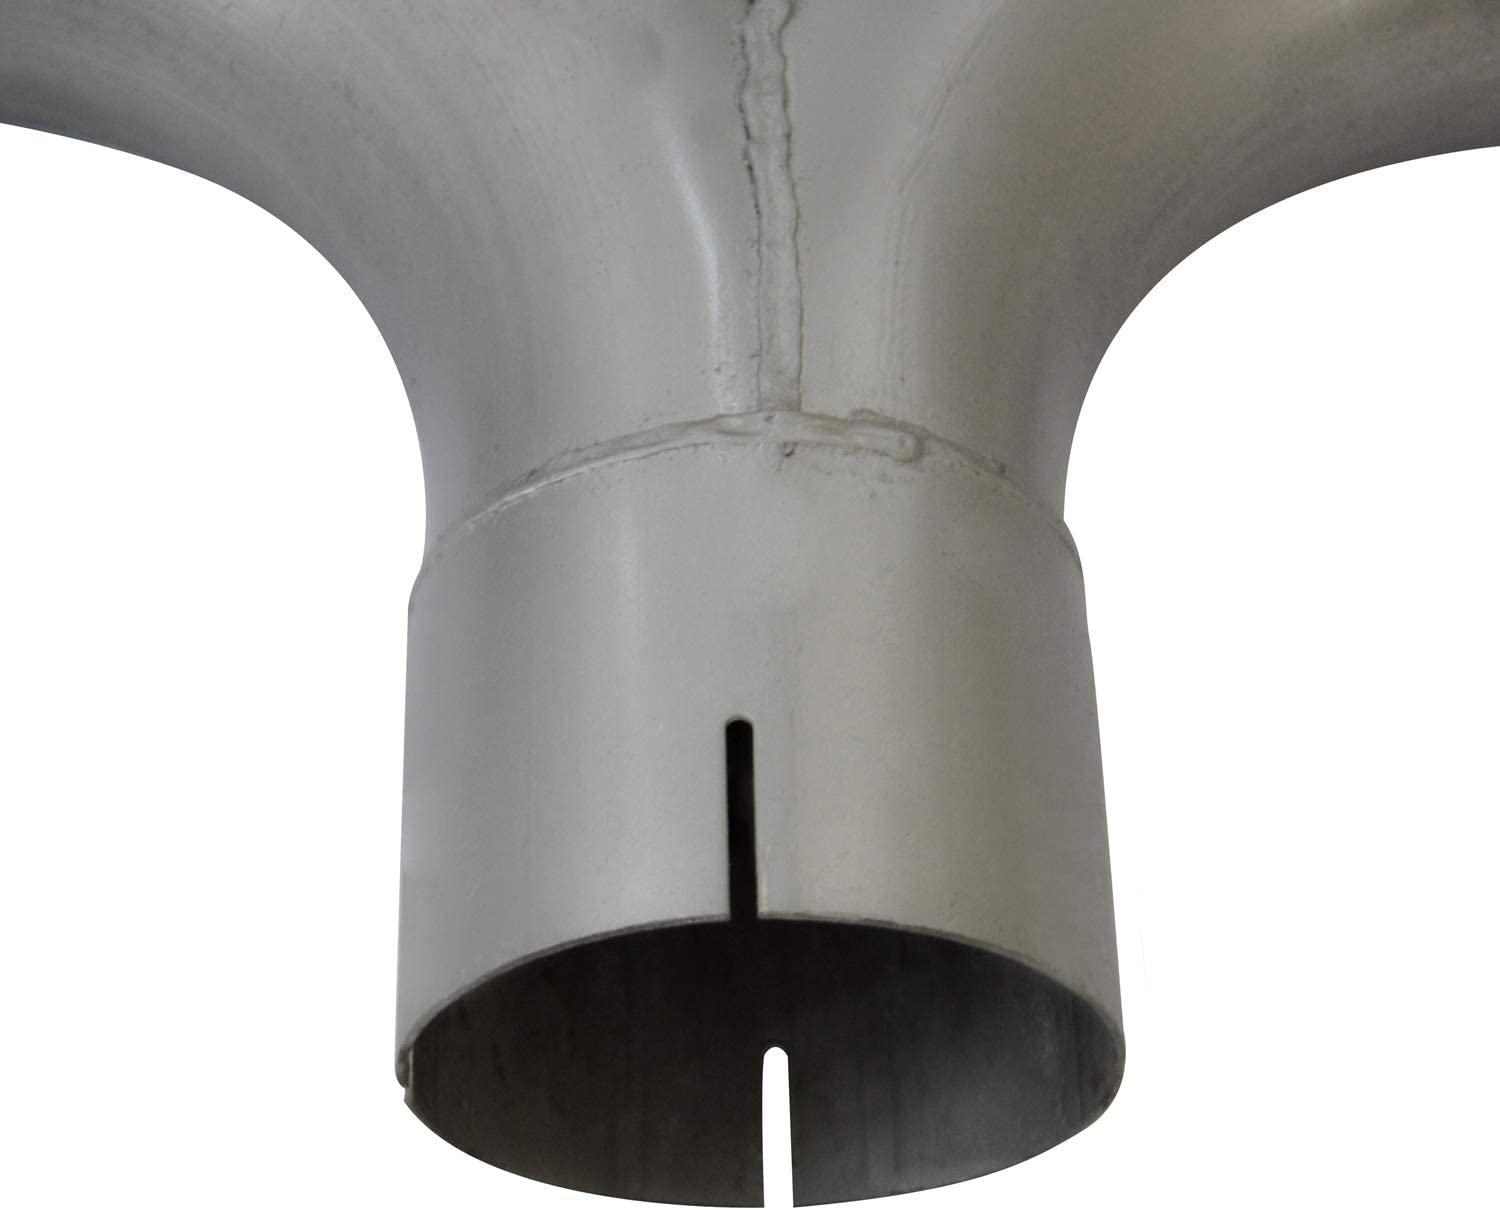 4 ID//OD Aluminized Y-Pipe Elbow With Divider,4 ID 4 OD-4 OD Y-Pipe With Bracket Exhaust Stack Pipe